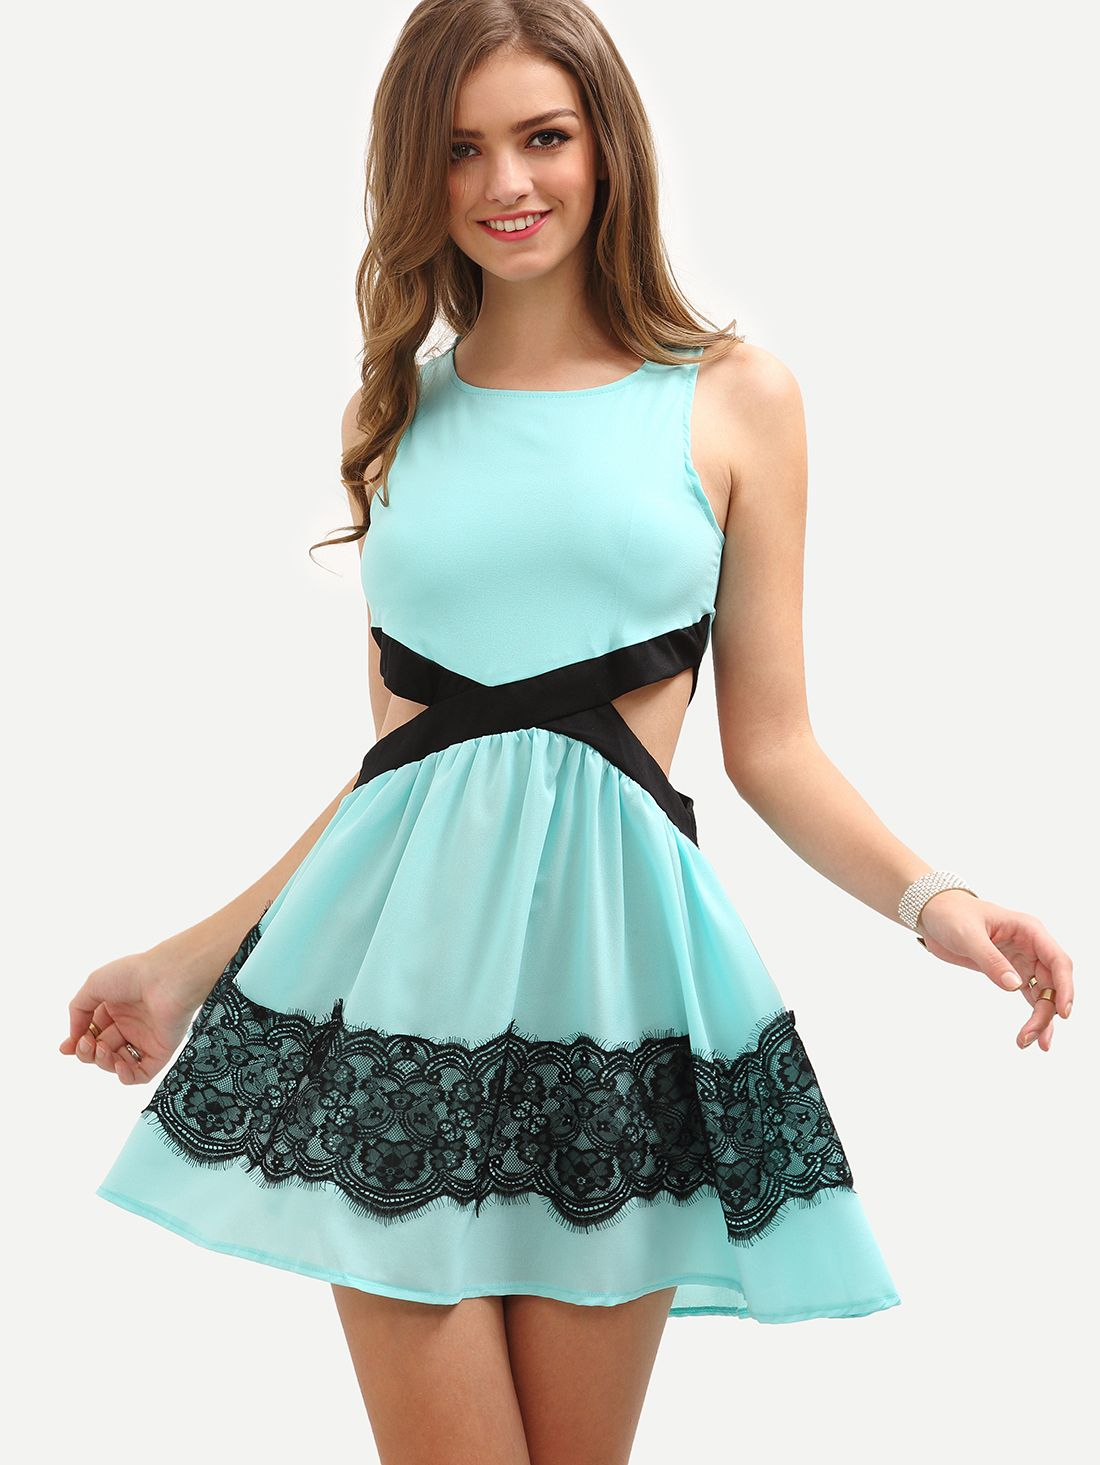 Lace+Applique+Cutout+Sleeveless+Skater+Dress+-+Sky+Blue+16.99